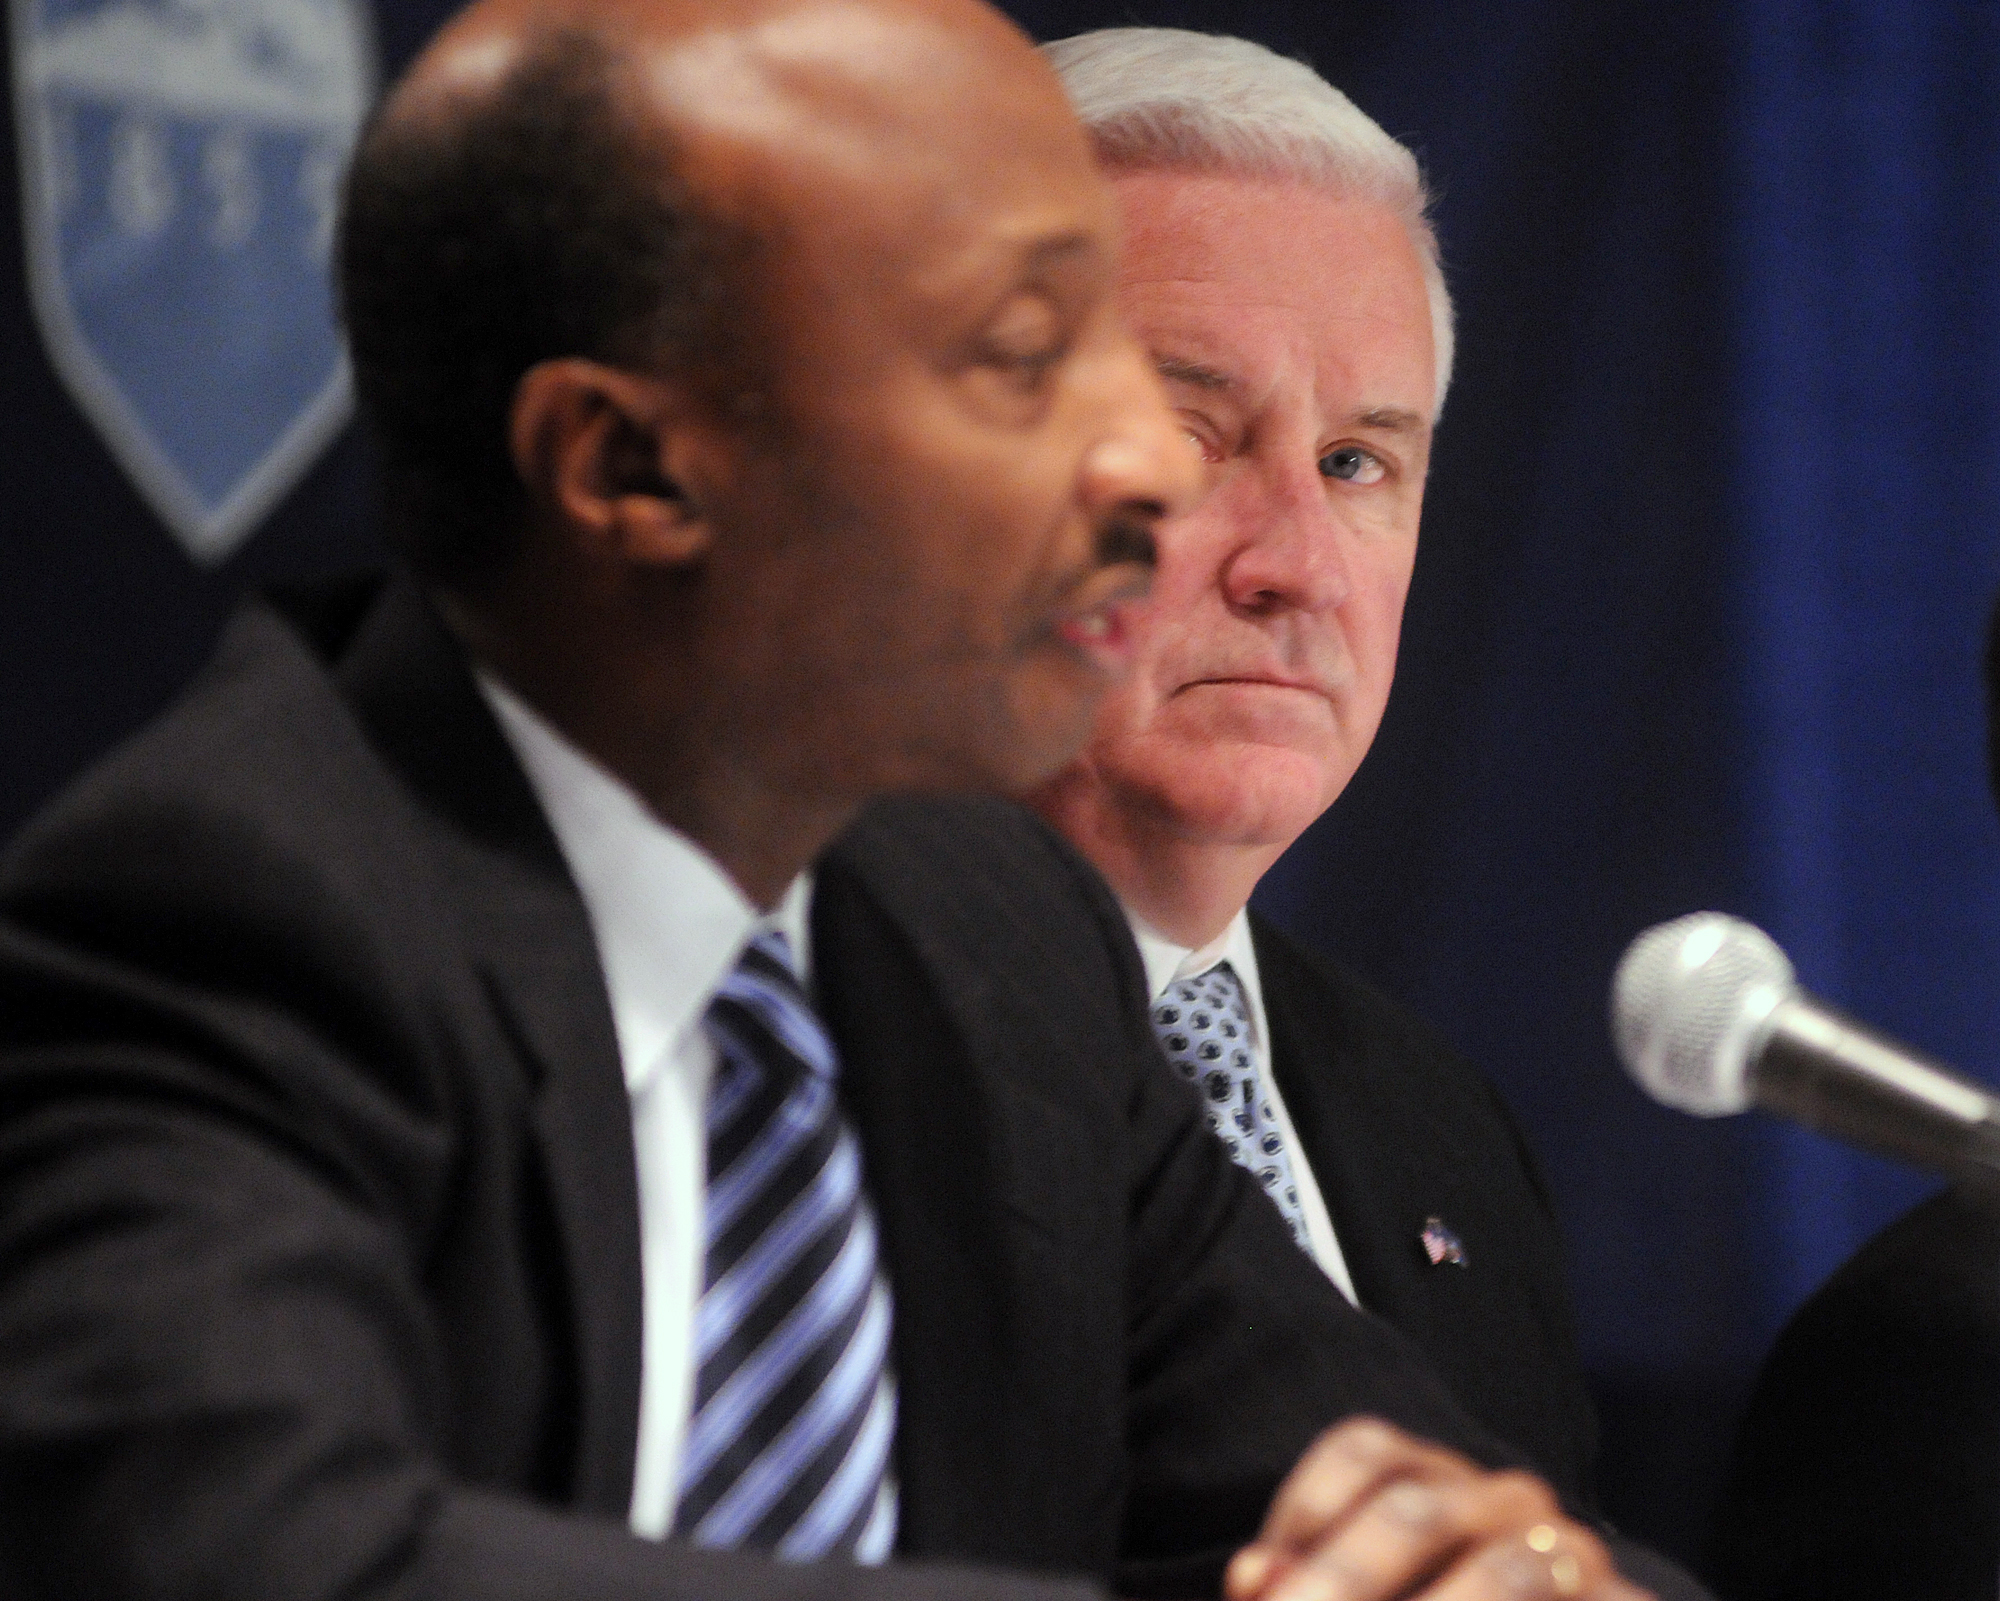 Governor Tom Corbett, right, watches as Kenneth Frazier, chairman of the investigative committee, speak to media following the Board of Trustees meeting on Friday, Jan. 20, 2012 at the Nittany Lion Inn.